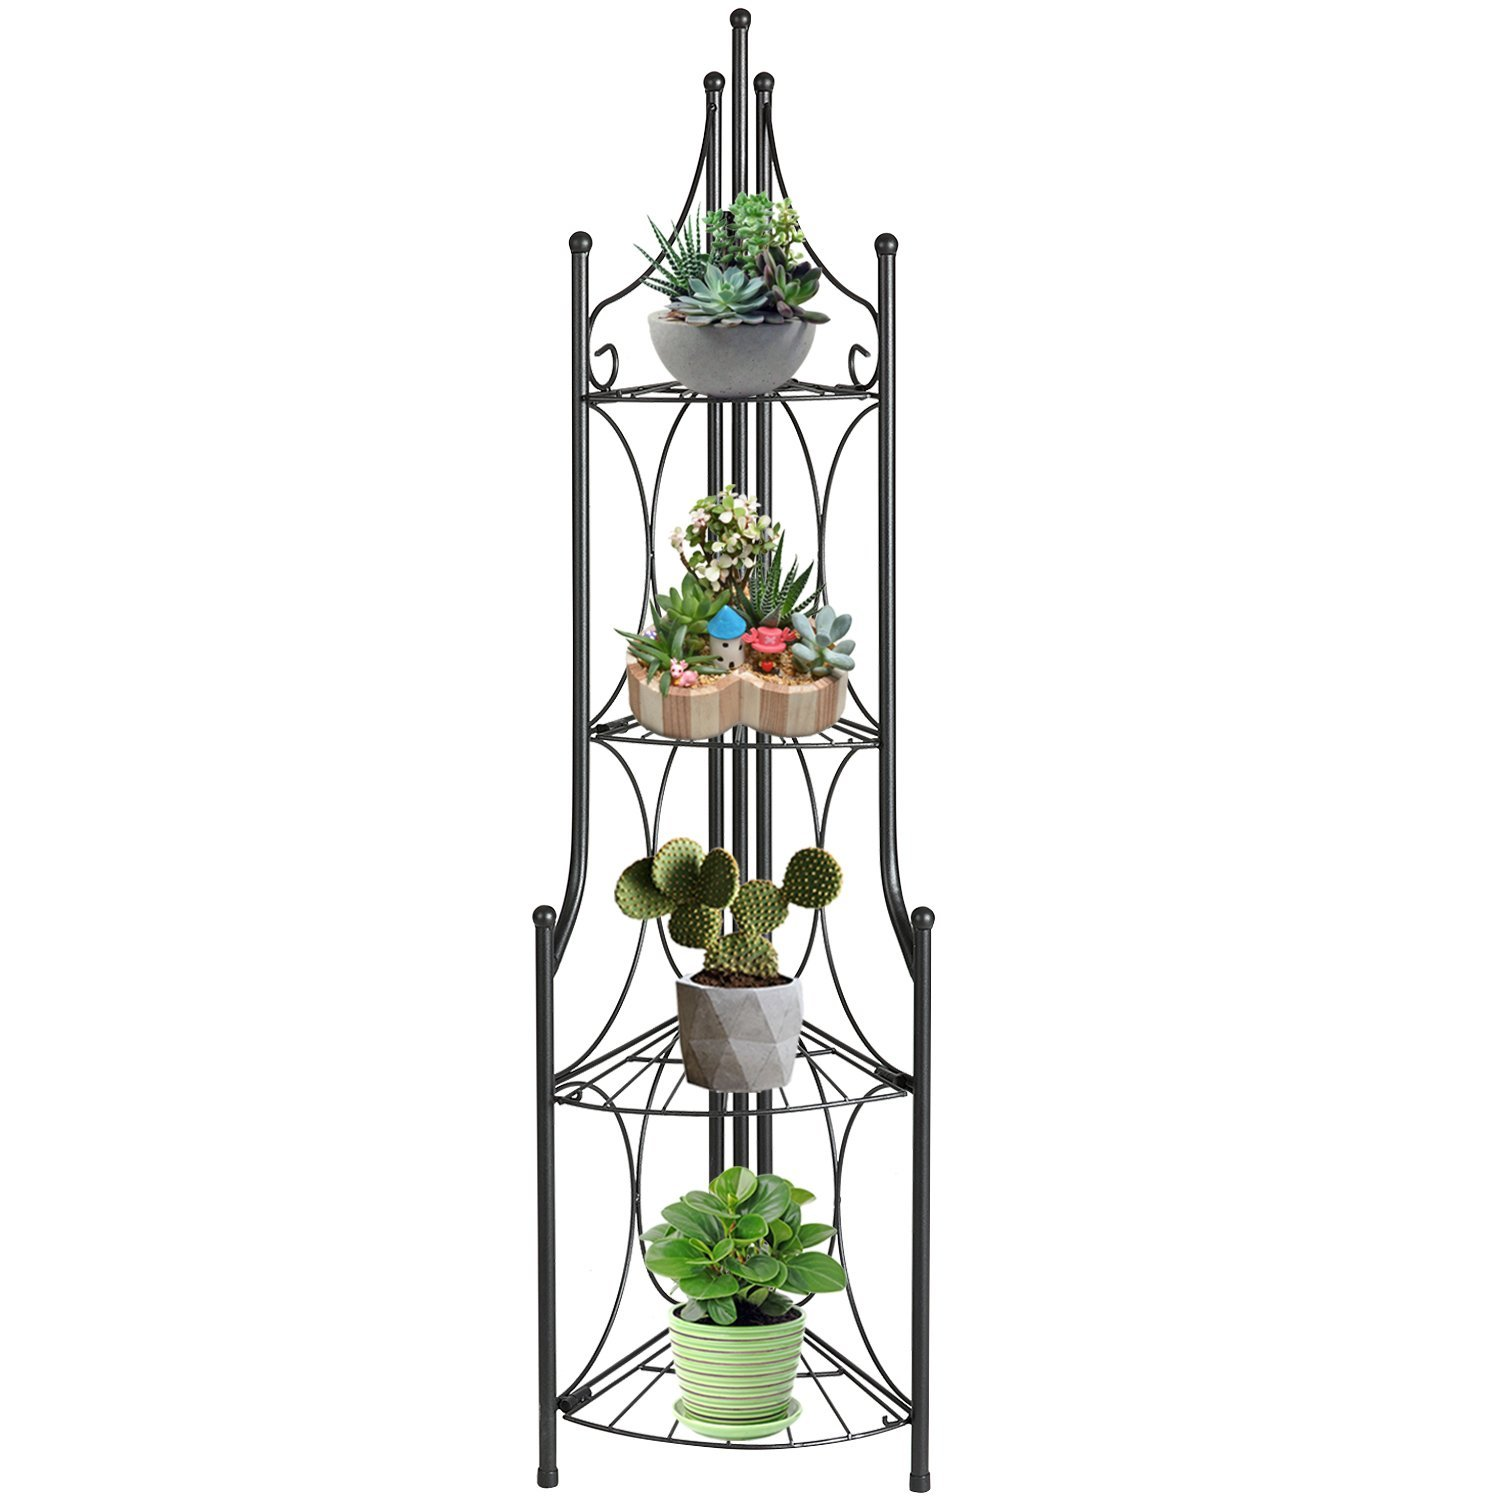 DOEWORKS 4 Tier Folding Plant Stand Pot Rack & Metal Corner Shelf, Storage Shelves for Living Room Bedroom,11.2 L x 11.8 W x 43.3 H by DOEWORKS